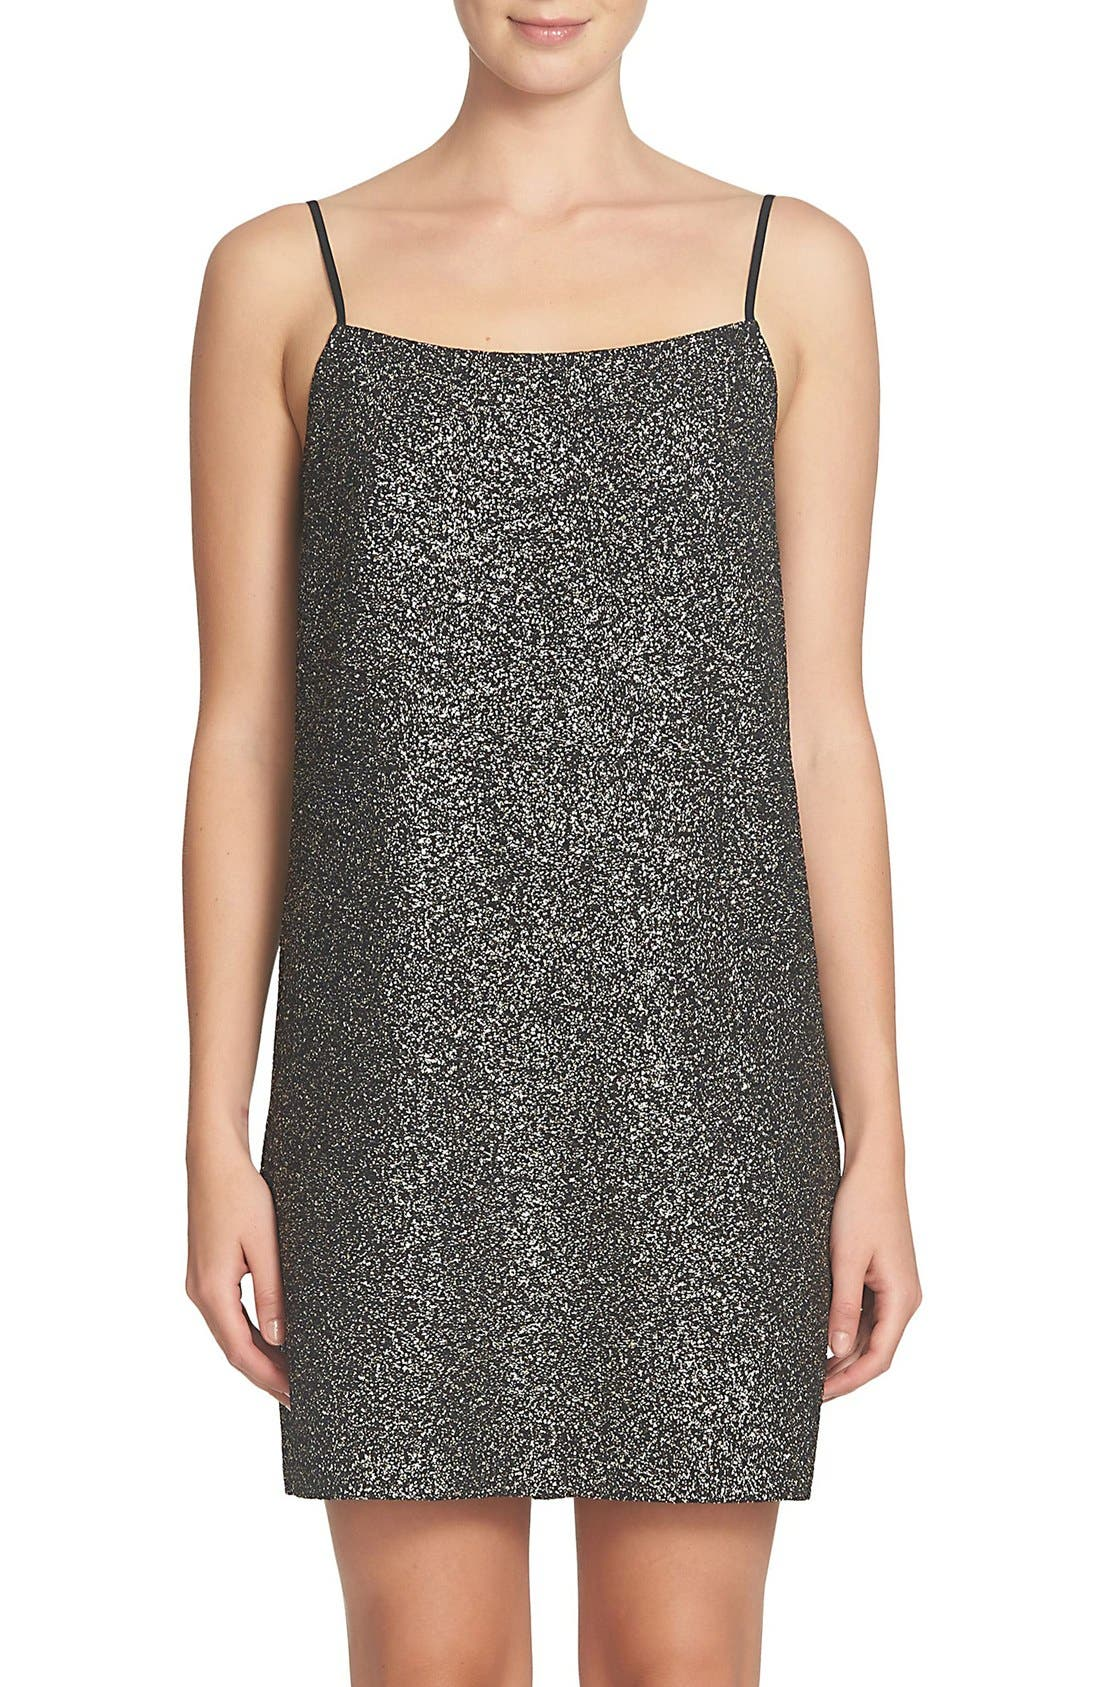 CECE Mia Foil Knit Slipdress